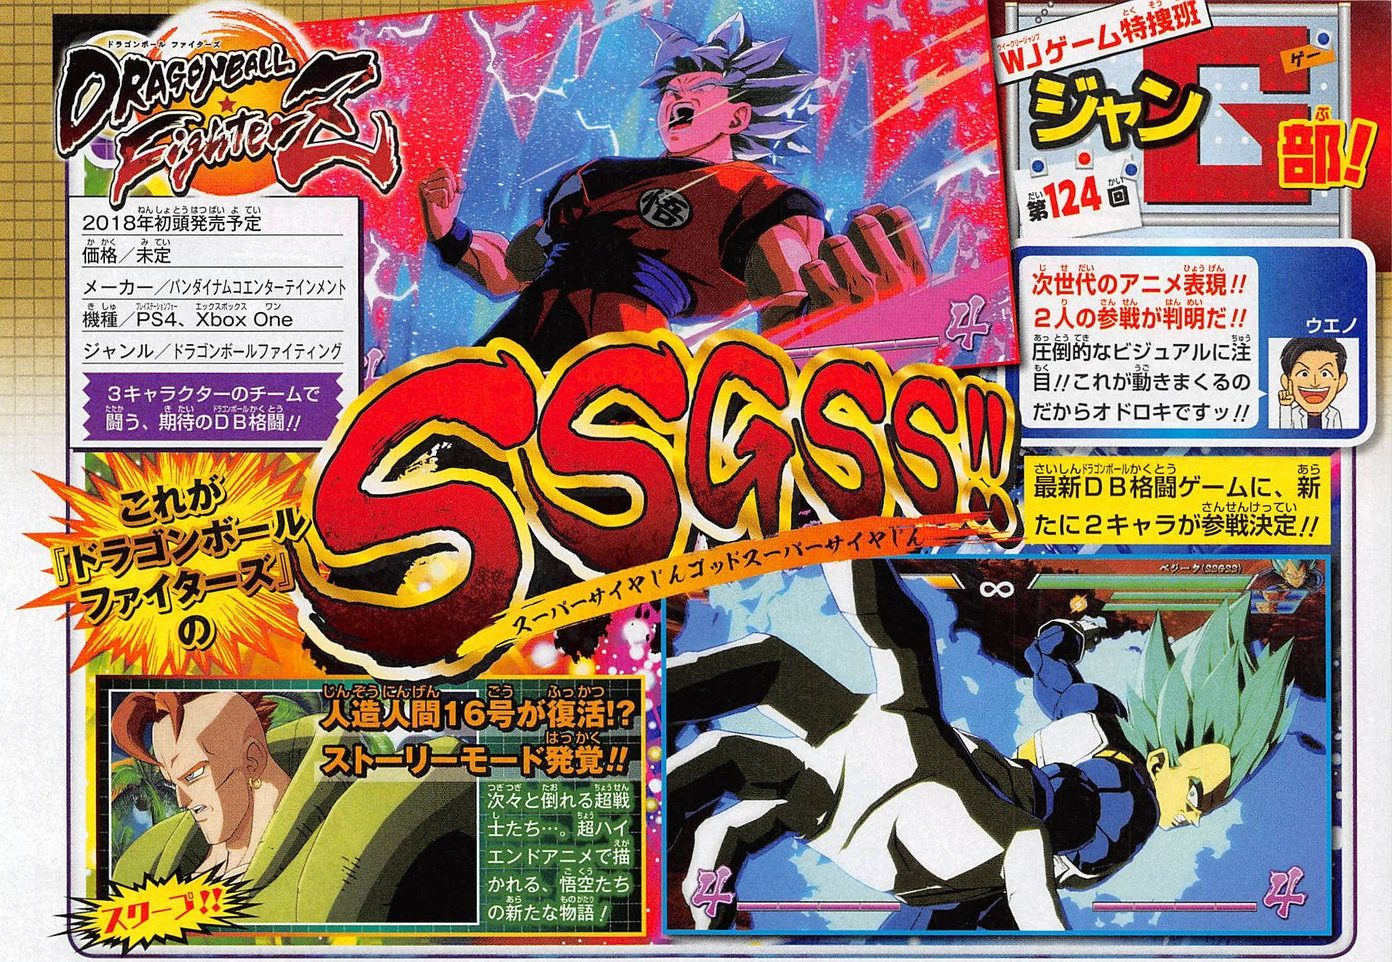 Dragon Ball FighterZ Story Mode Detailed, Features Android 16 & New Playable Characters